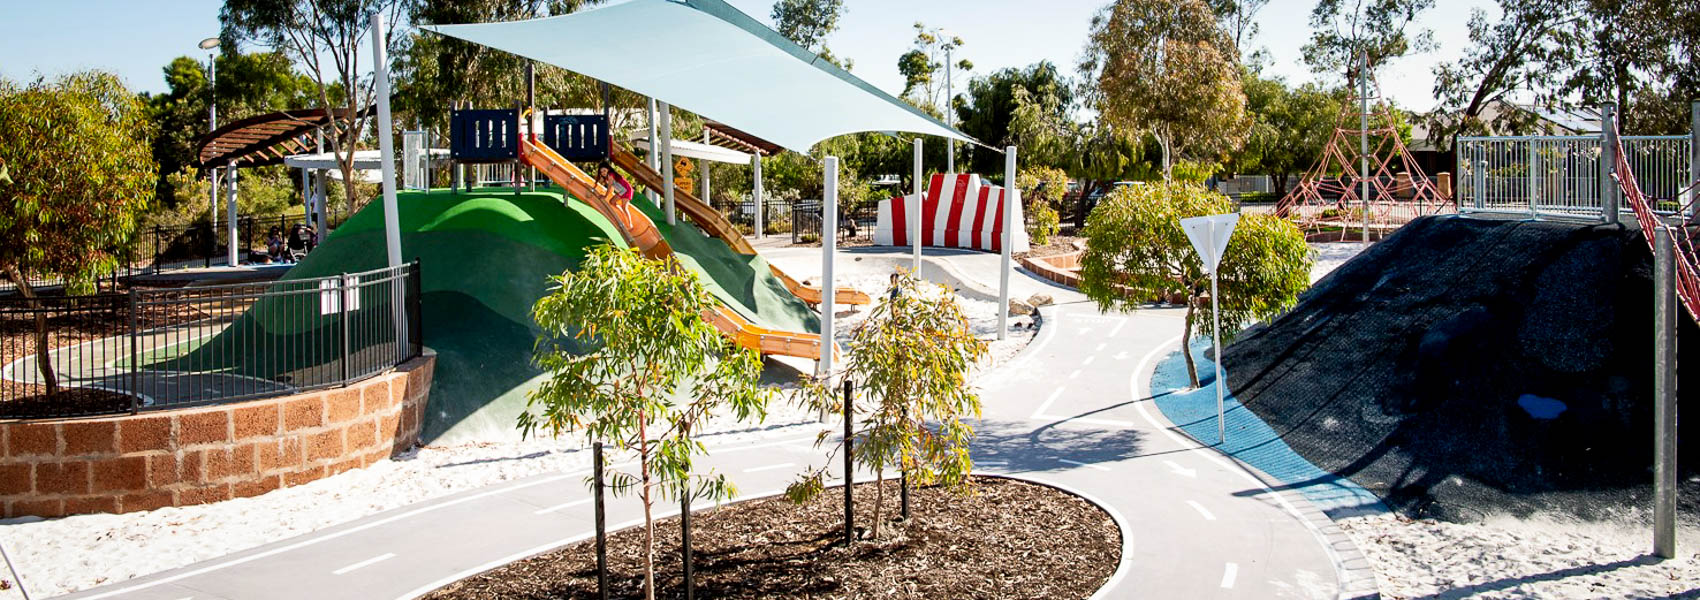 Pitstop Park in Banksia Grove has slides and cycling paths